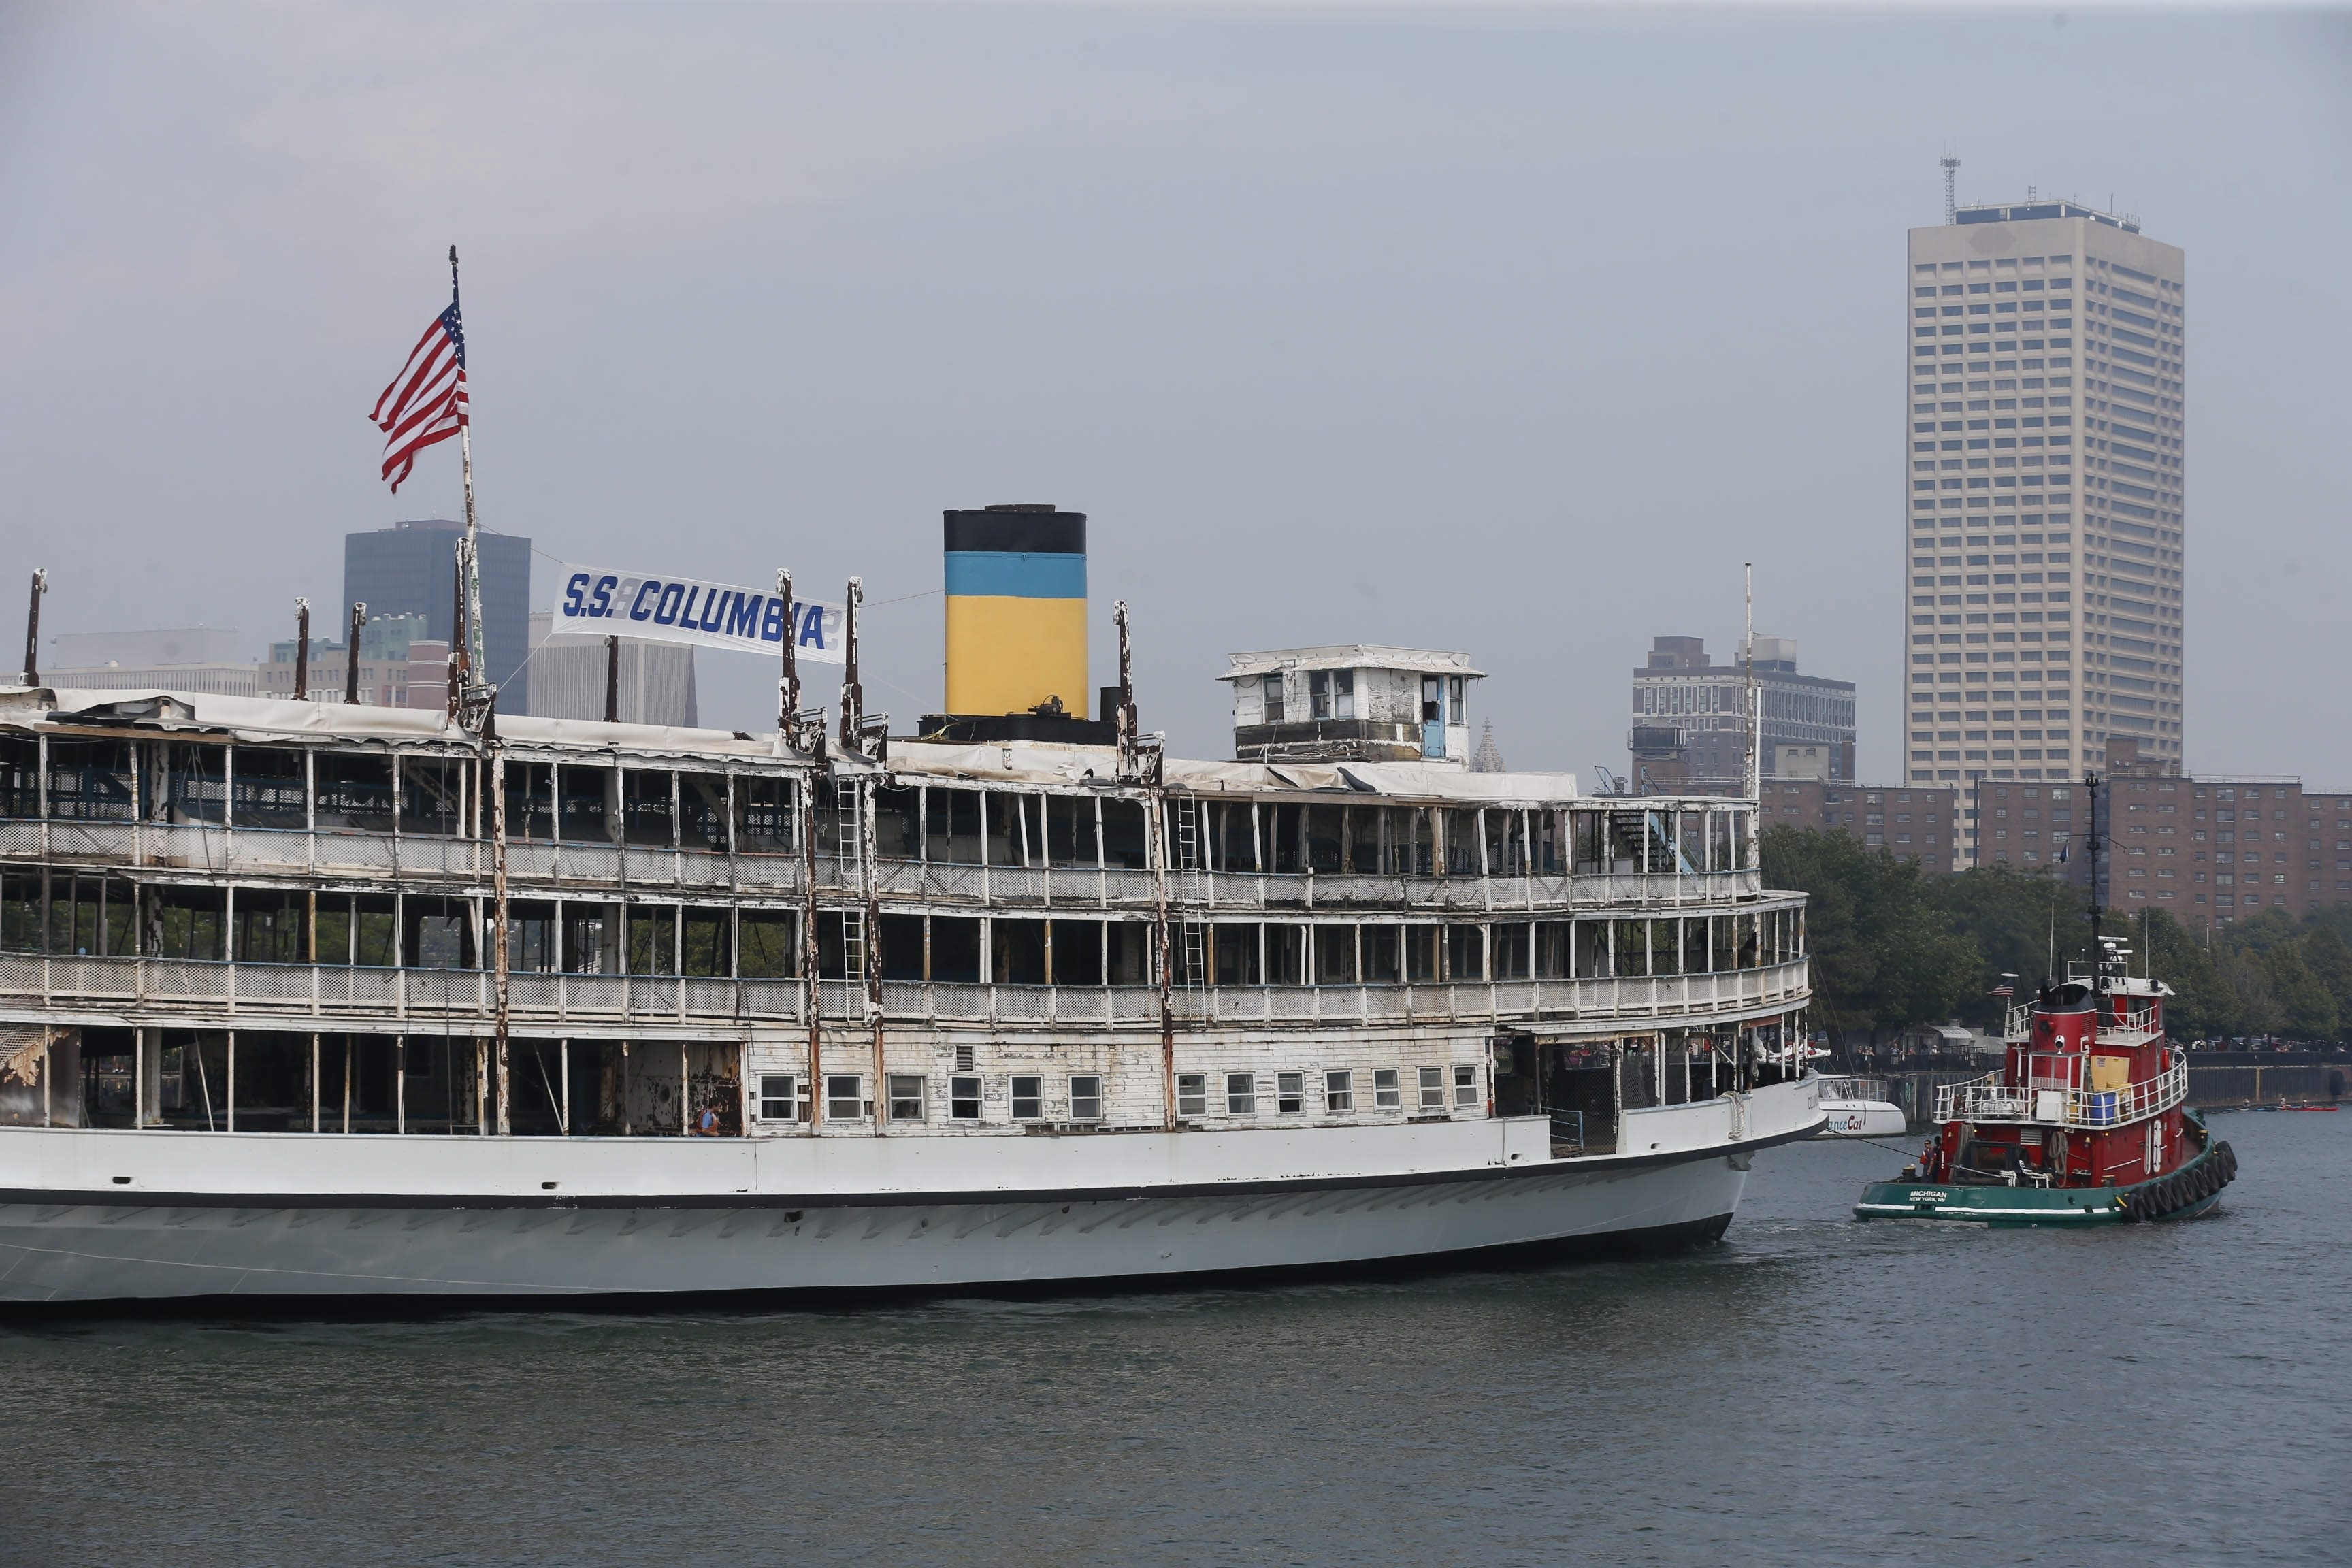 Robert Kirkham/Buffalo News The SS Columbia, America's oldest steamship, built in 1902, arrives for a visit to Buffalo Harbor on Wednesday.